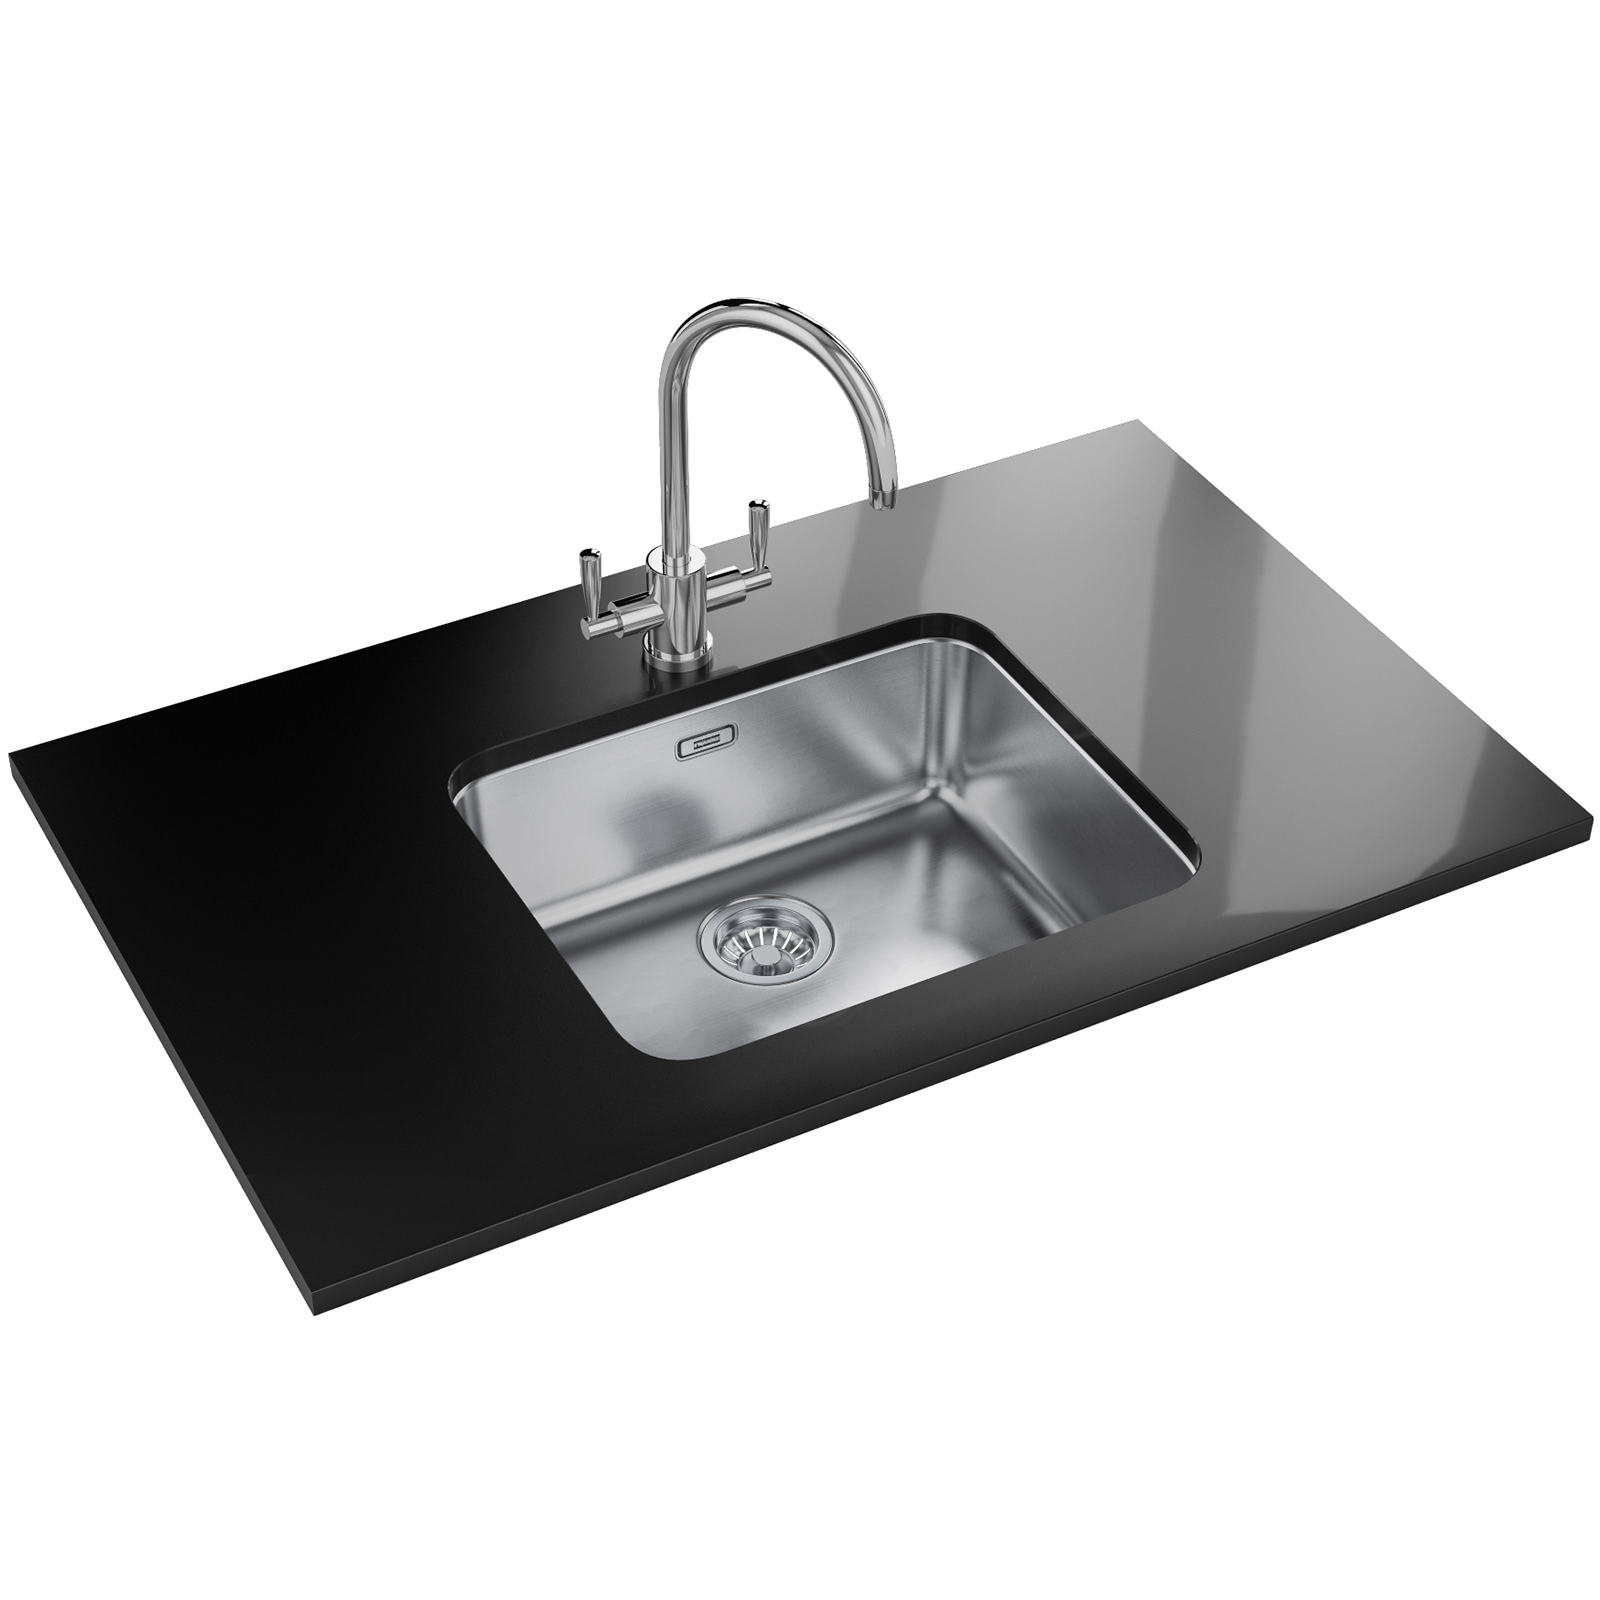 Franke Largo Lax 110 50 41 Dp Stainless Steel Sink And Tap